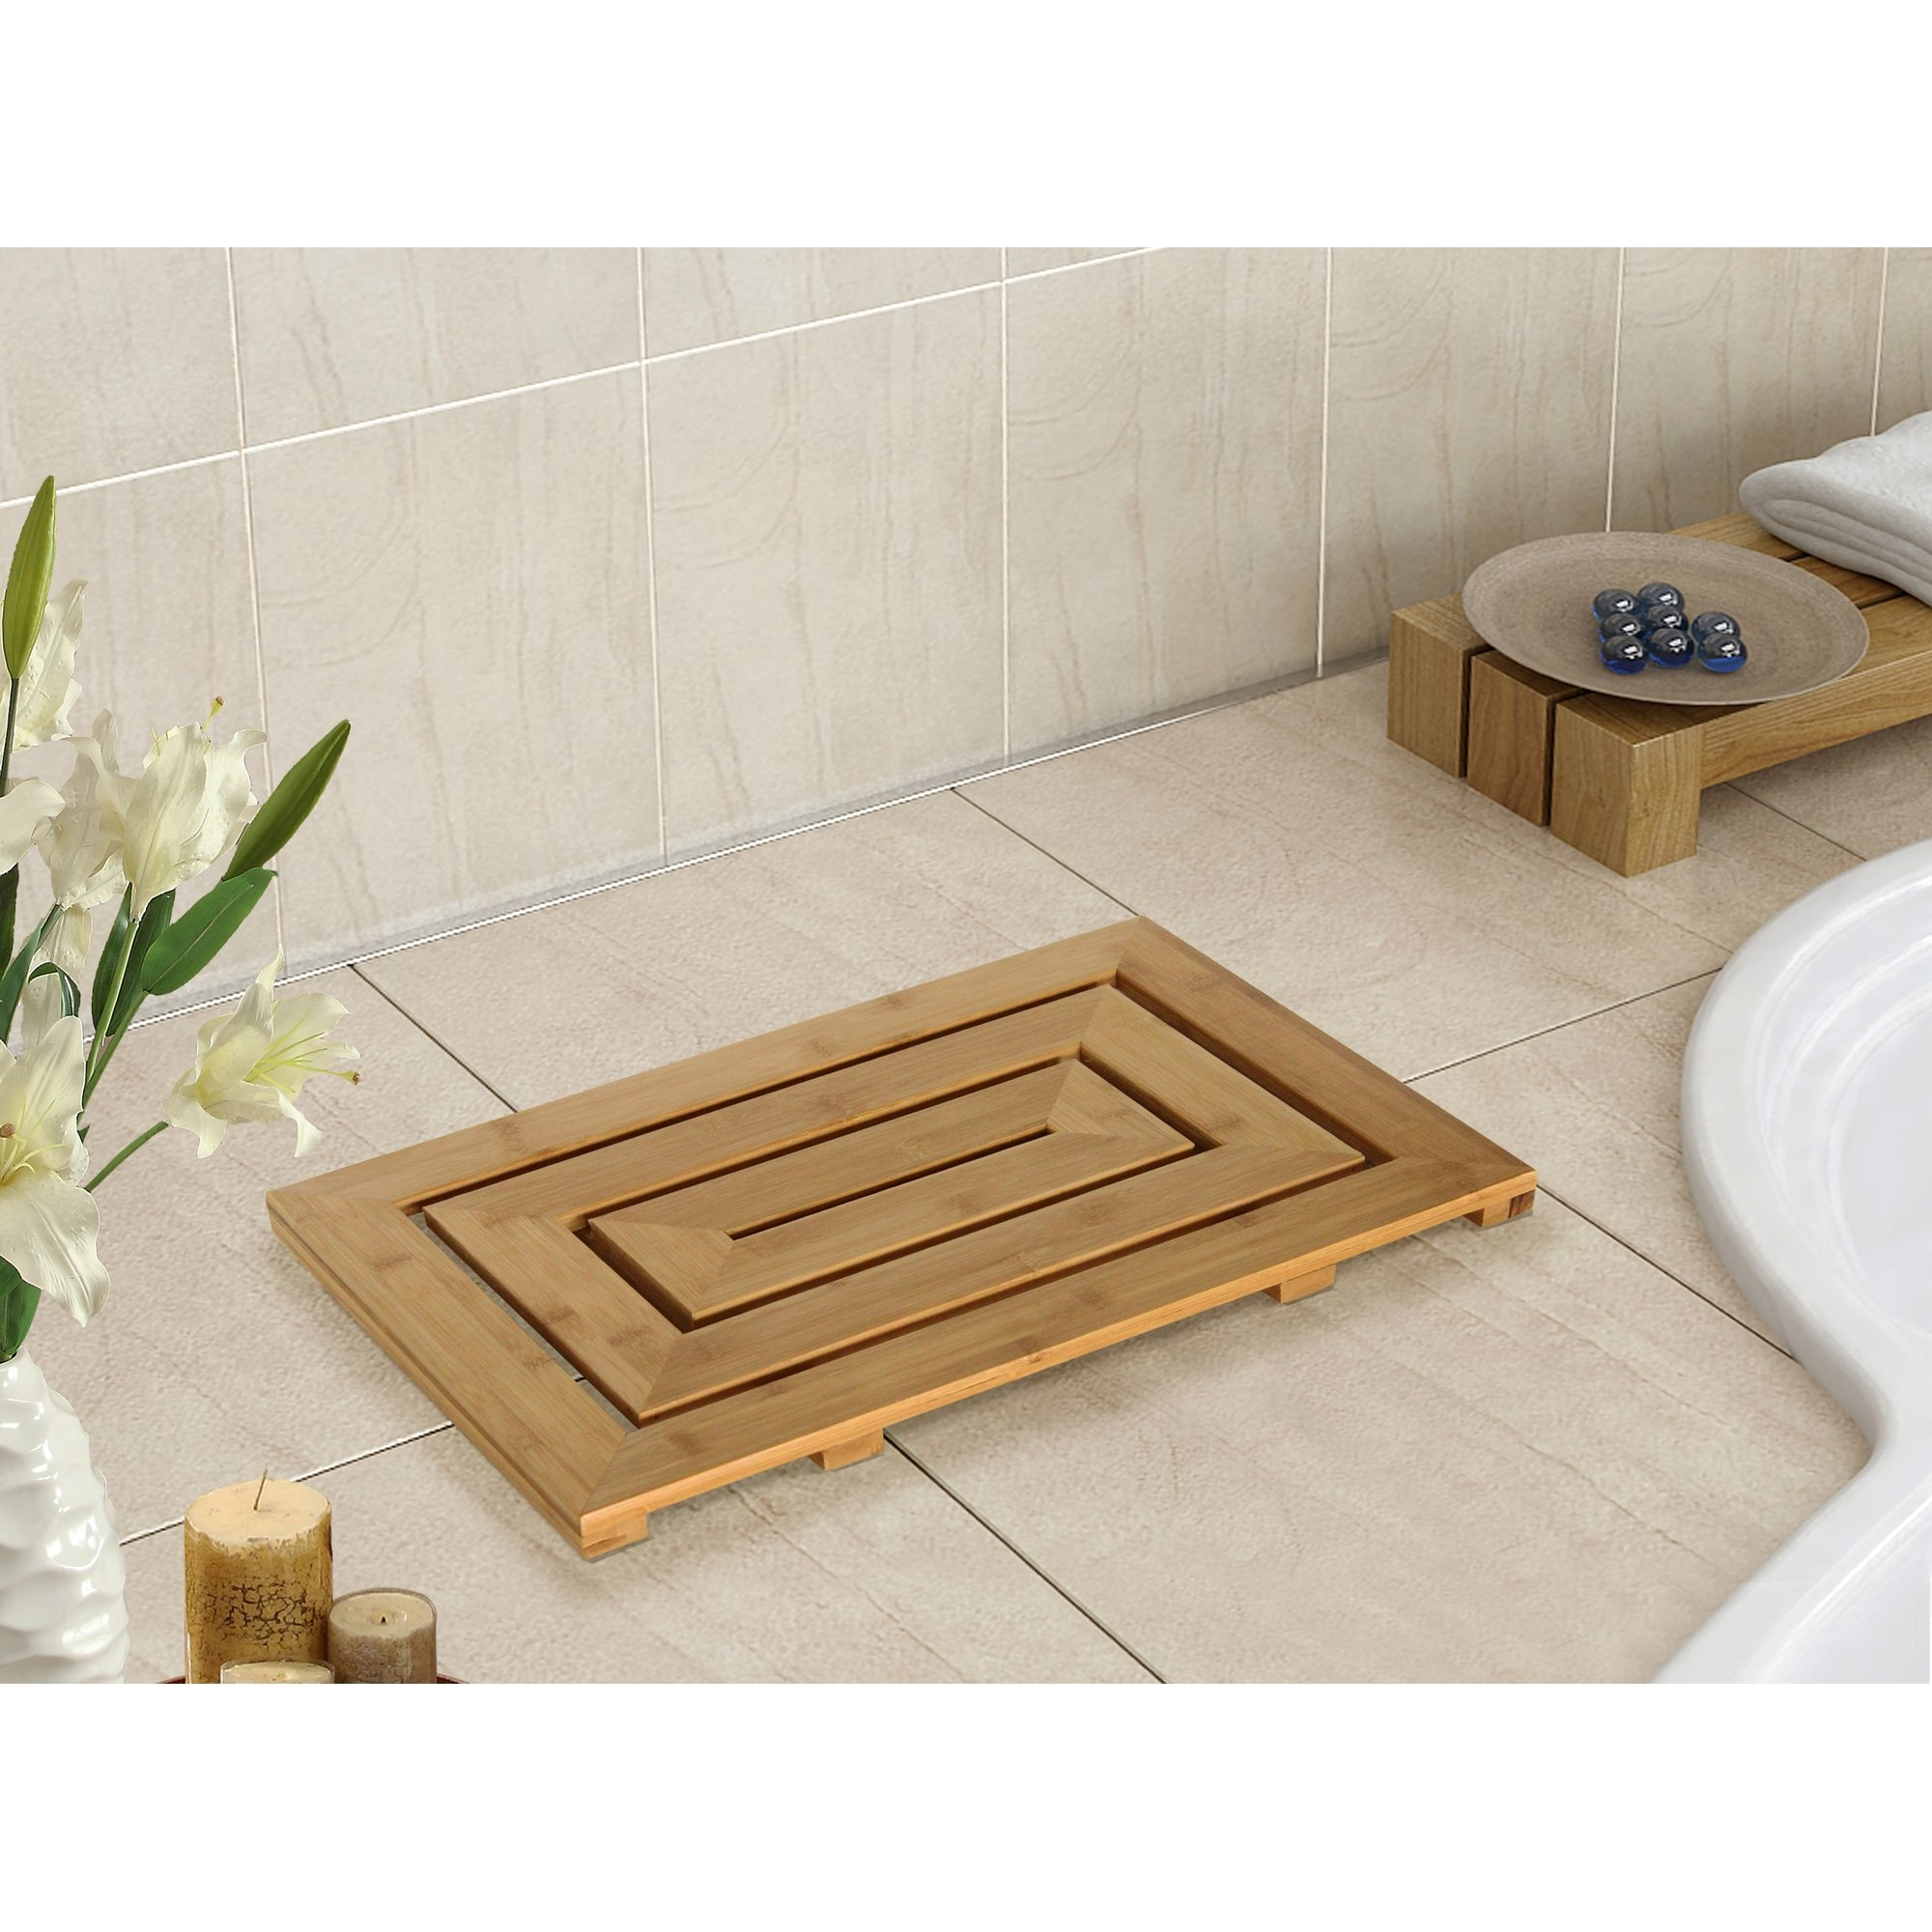 Permalink to Boots Jacuzzi Bath Mat